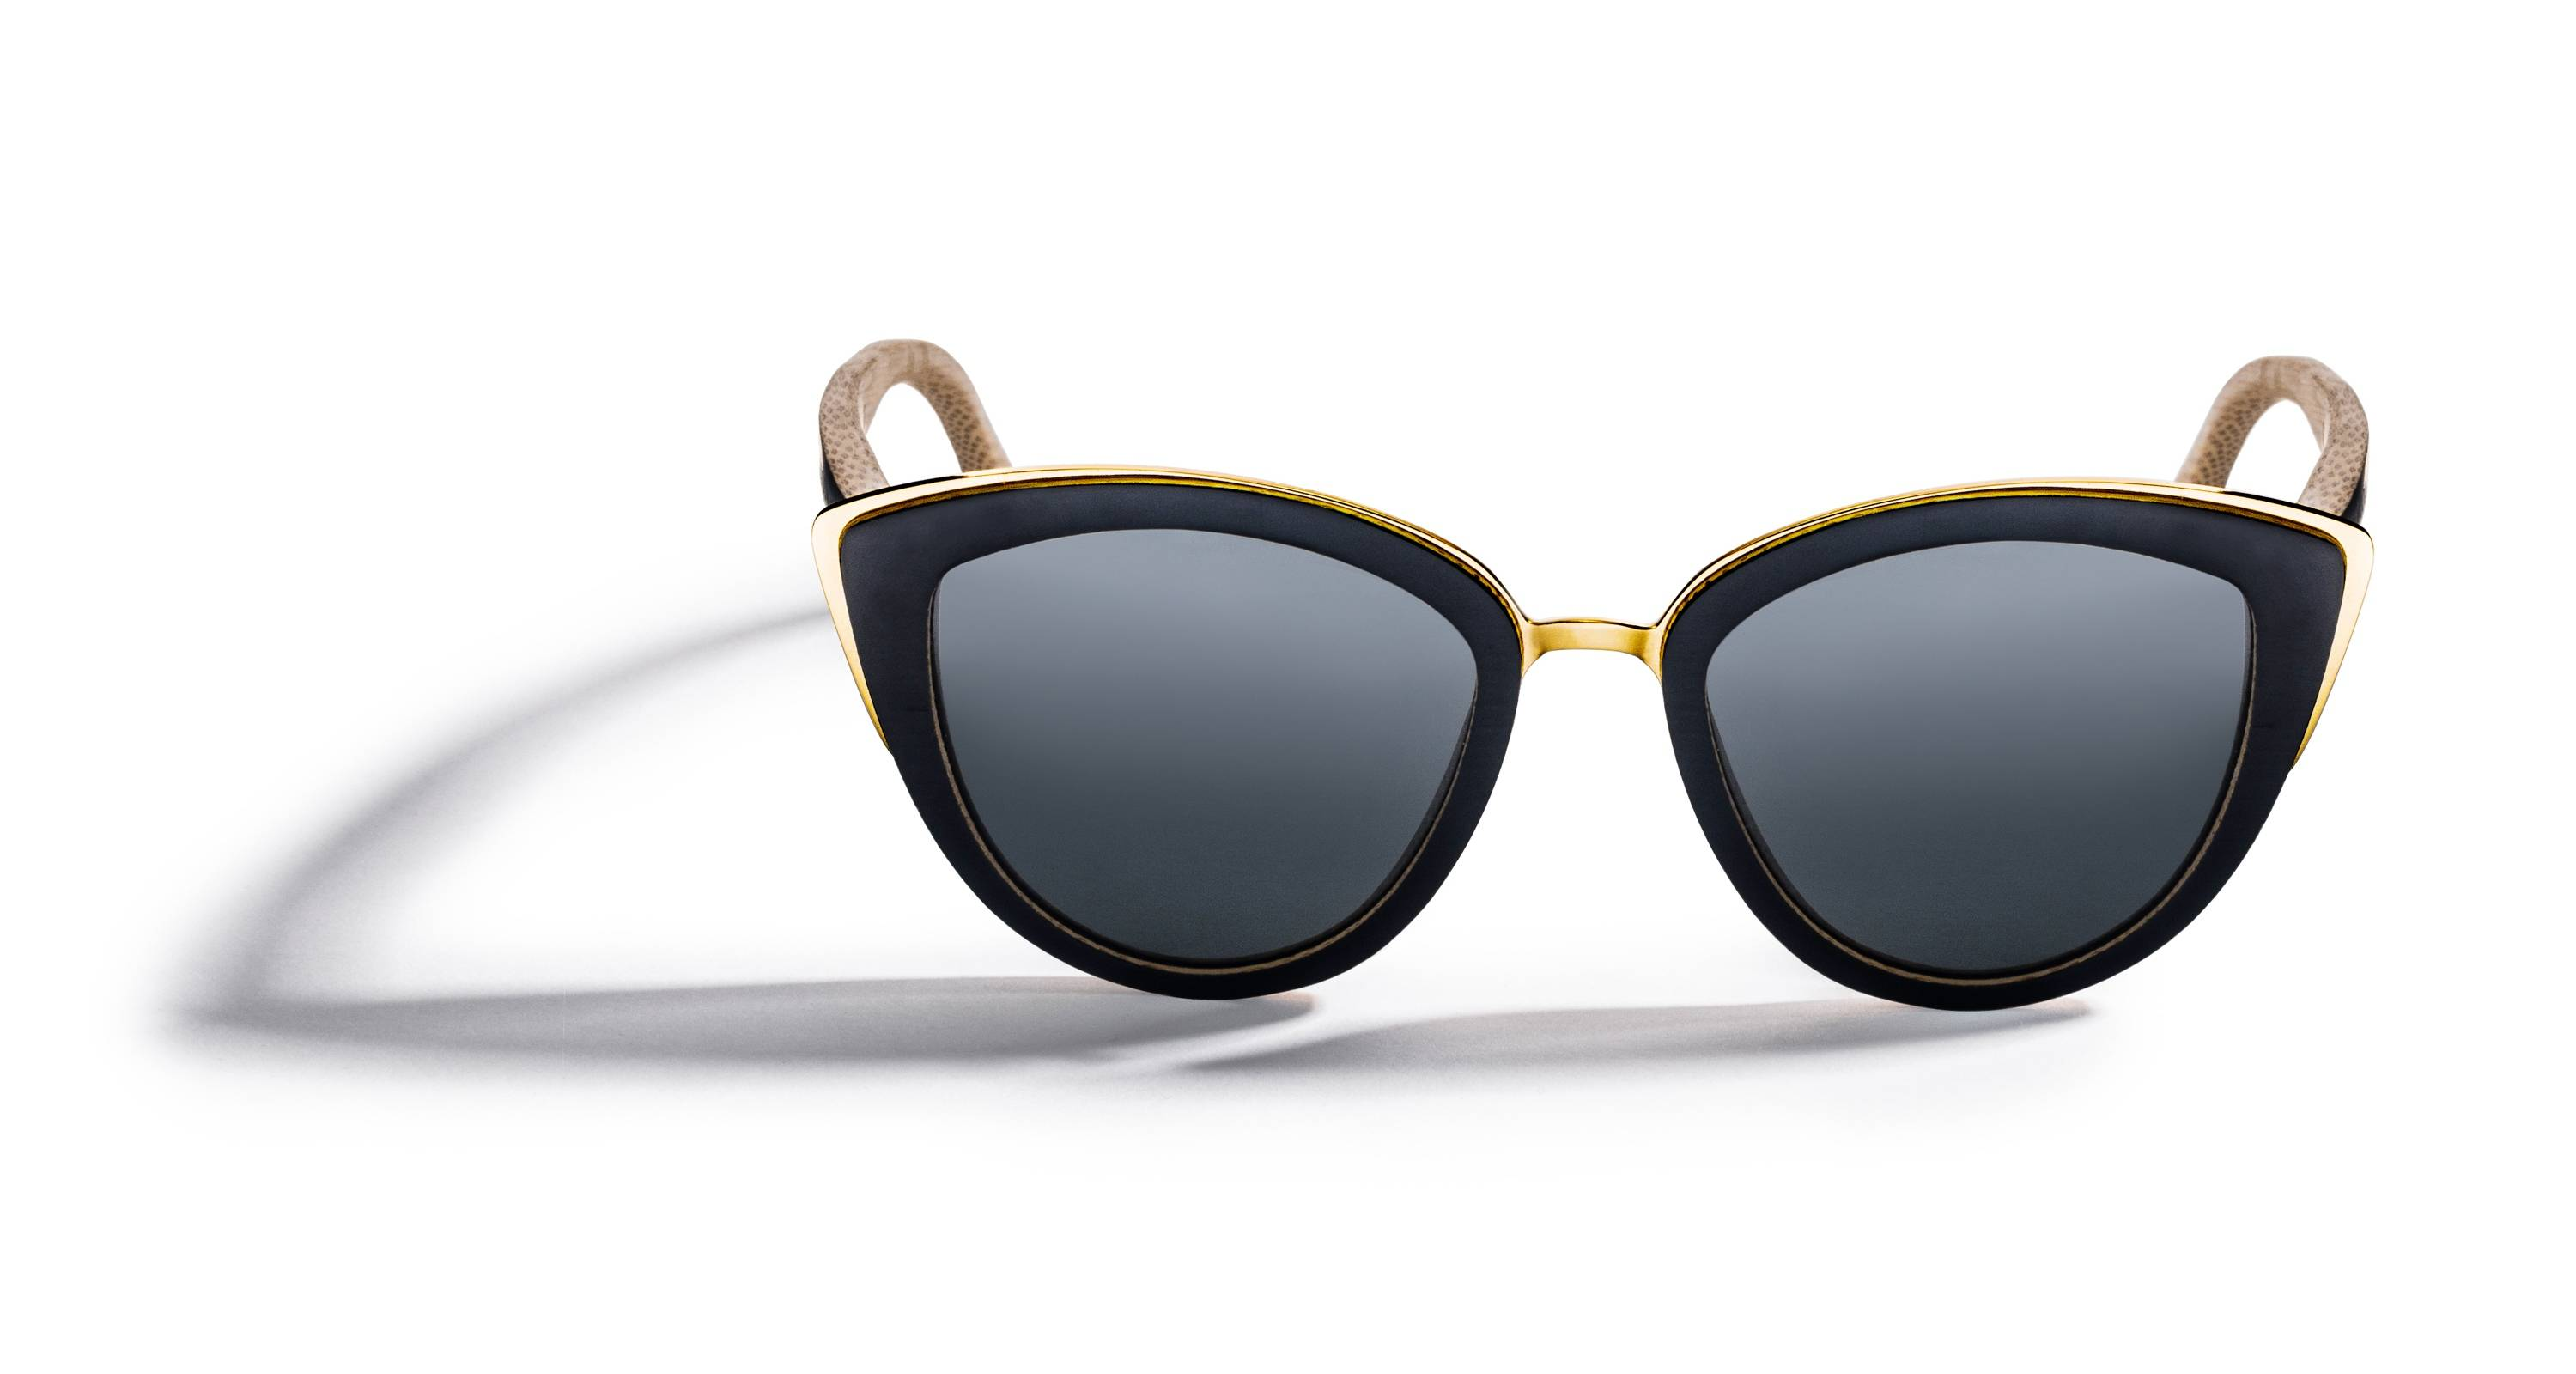 Kraywoods Willow, Cat Eye Sunglasses made from Bamboo wood with polarized dark lenses